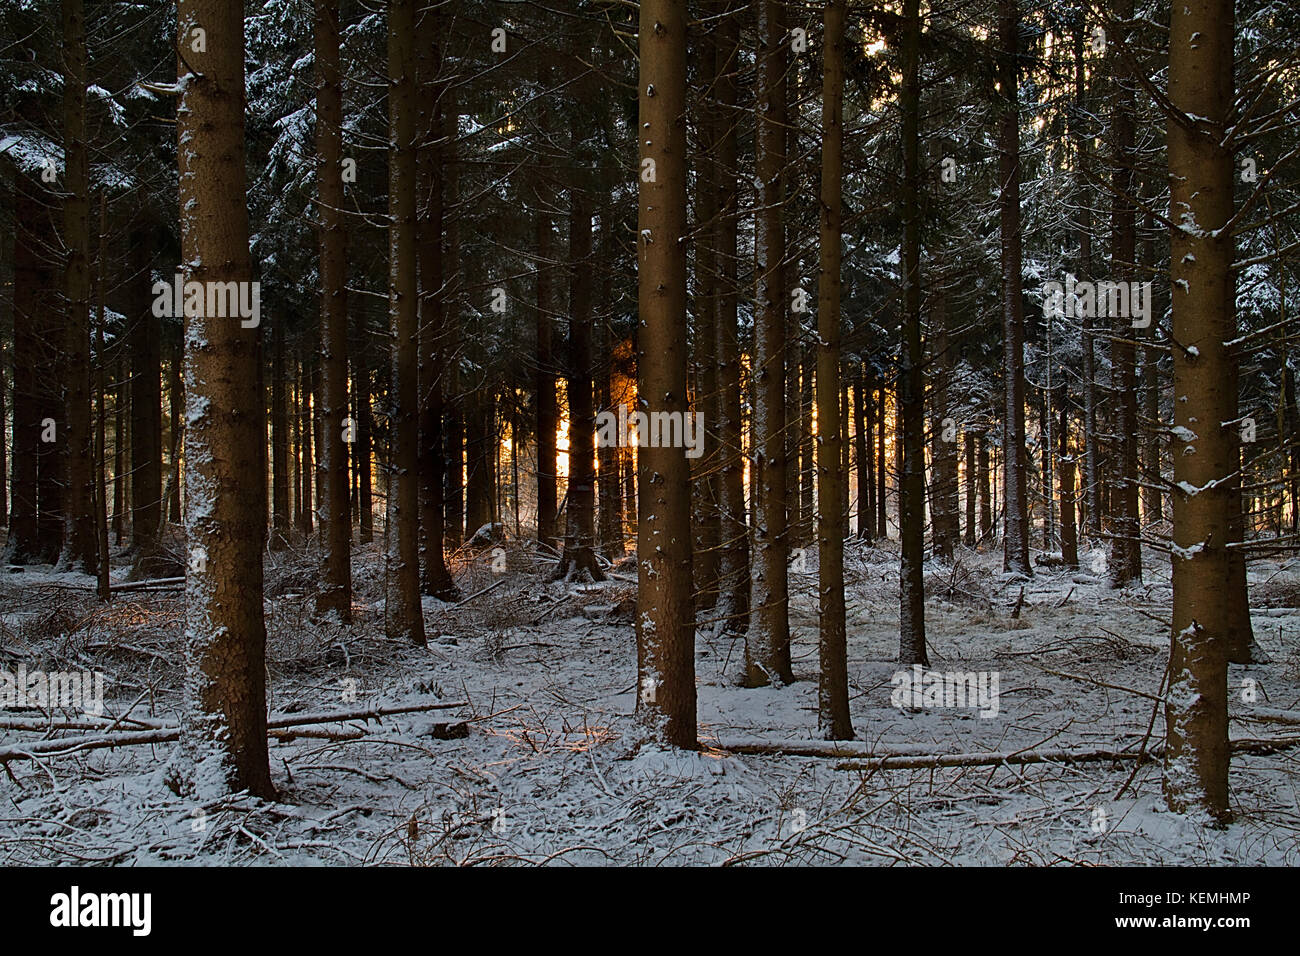 Sunrise in a pine forest in winter, red sunlight between the three stems, snow on the ground - Stock Image